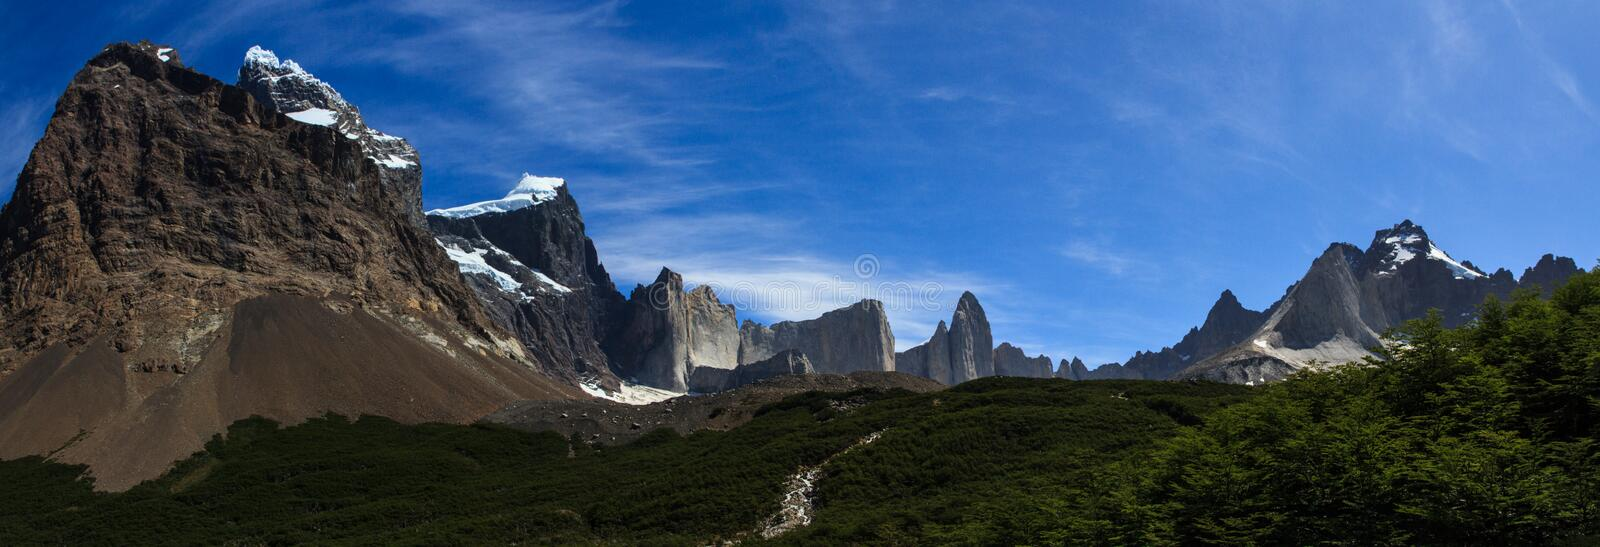 Une vue panoramique le long de la voie amenant la vallée française en parc national de Torres del Paine, Patagonia photo libre de droits